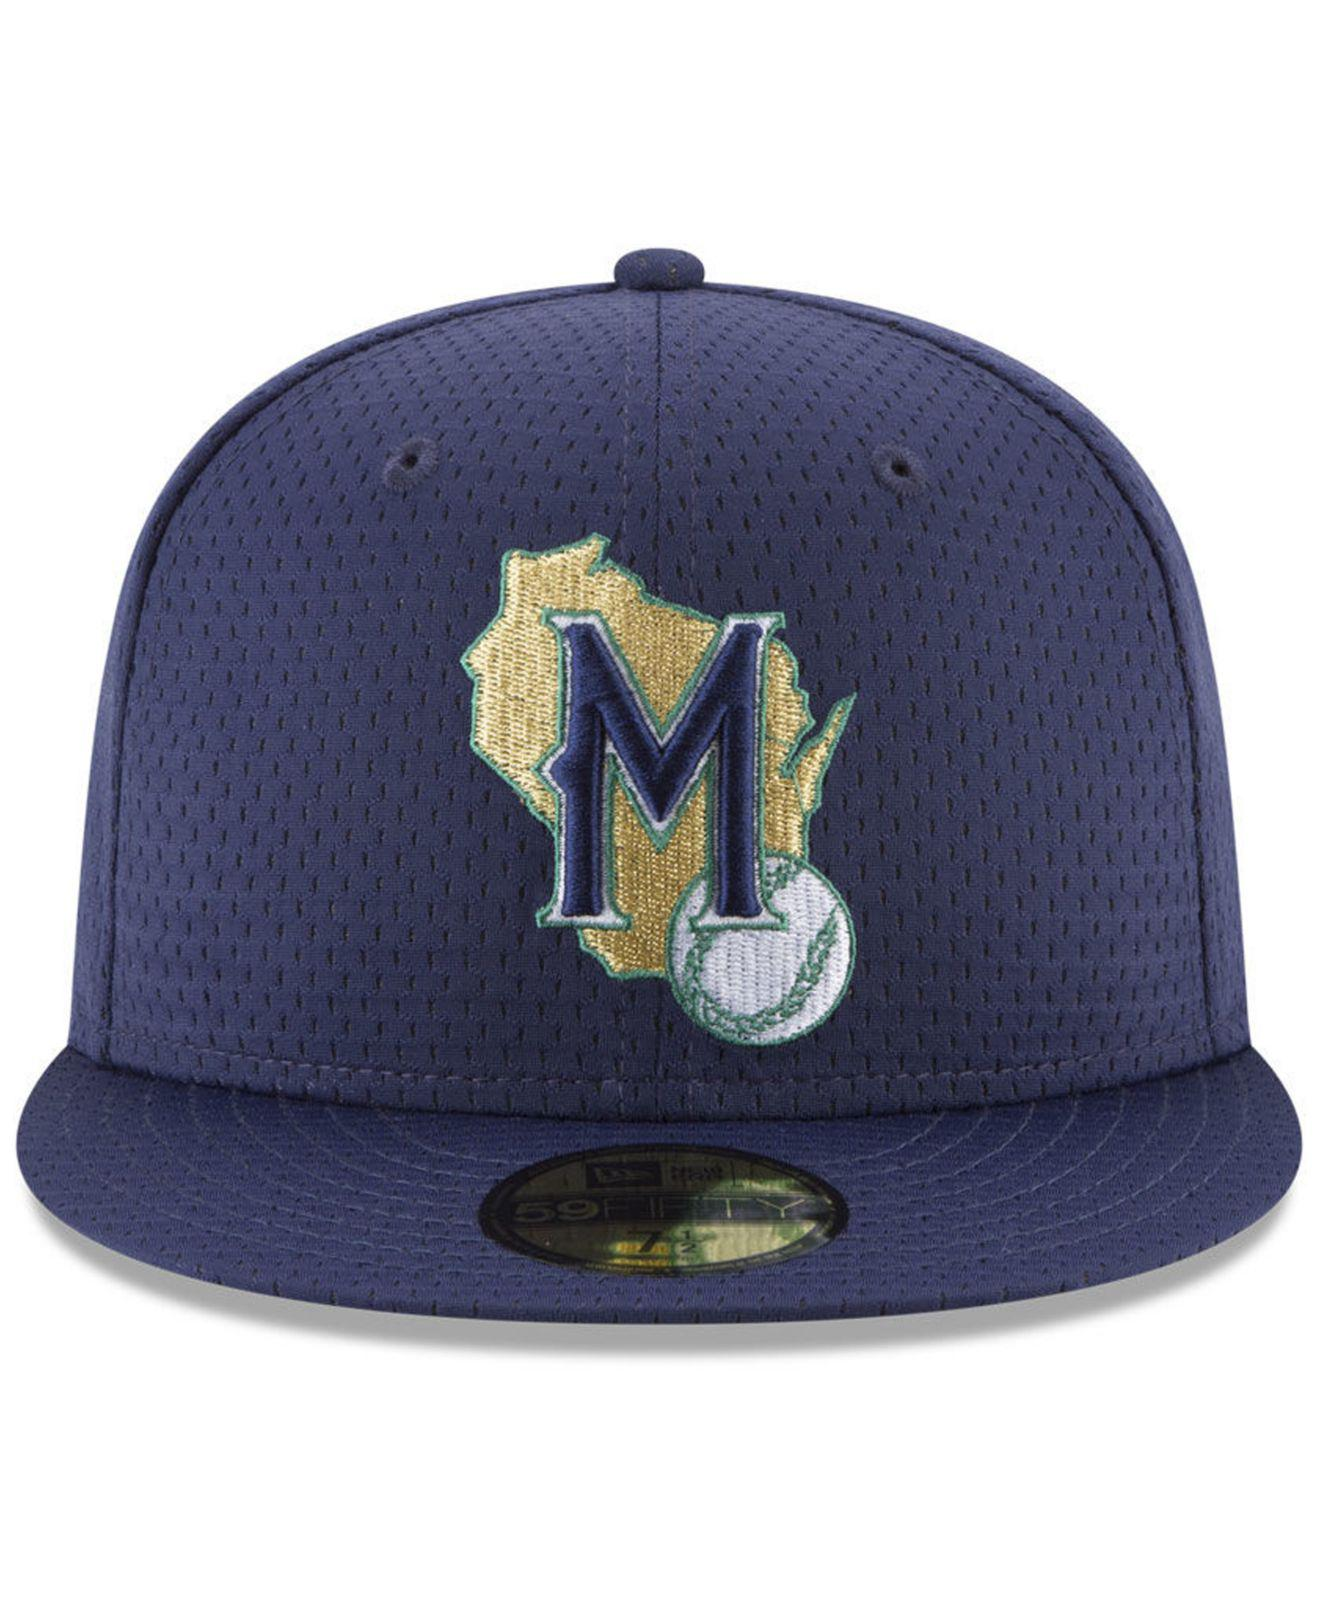 hot sale online b6f37 777ae KTZ Milwaukee Brewers Retro Classic Batting Practice 59fifty Fitted Cap in  Blue for Men - Save 8% - Lyst